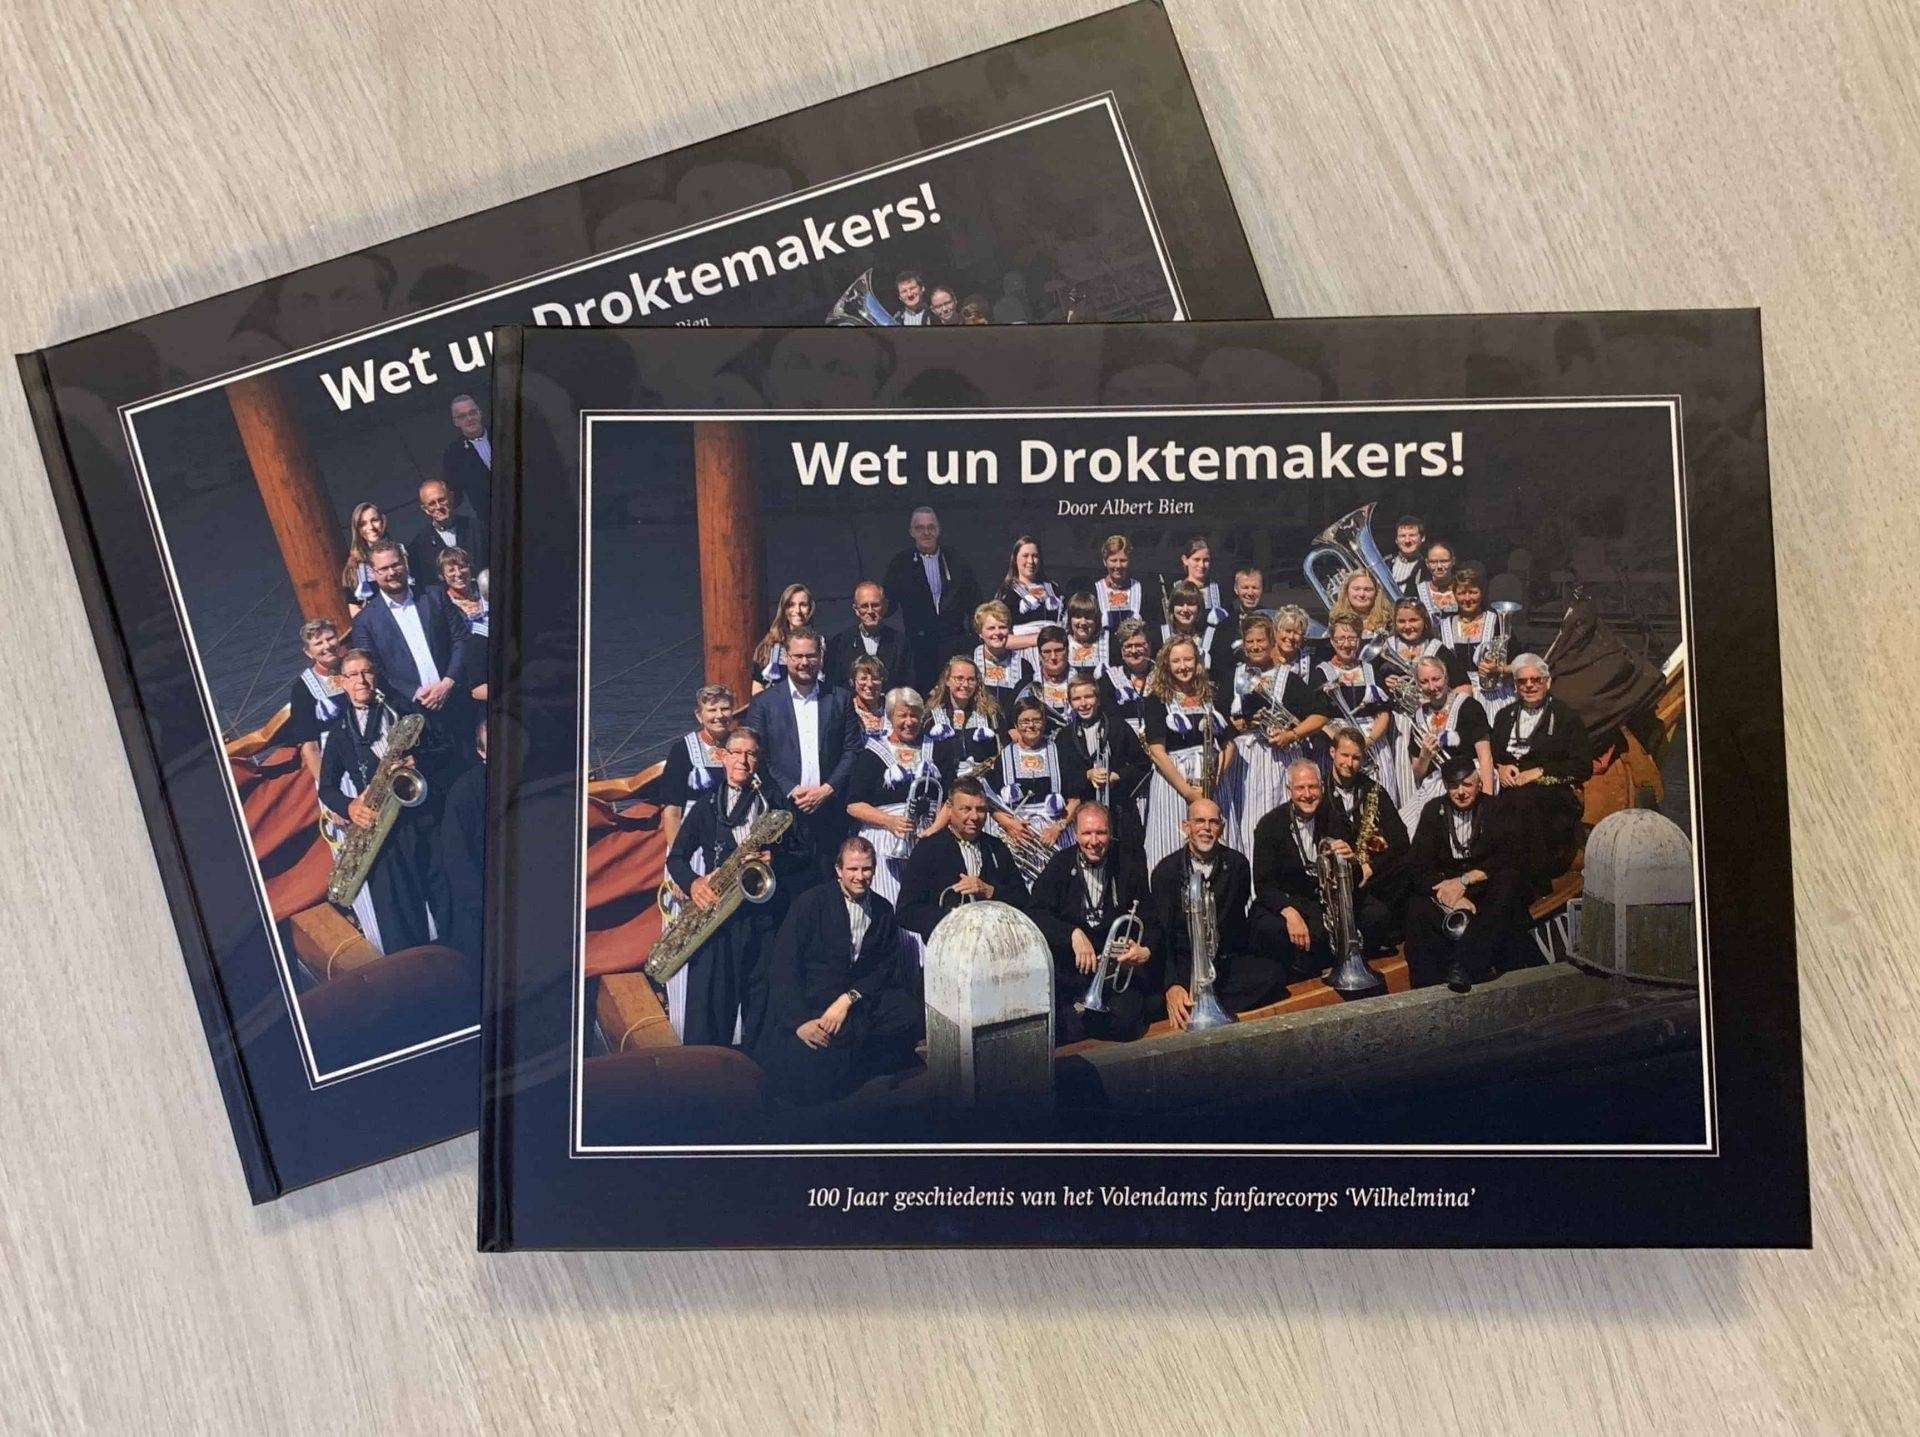 Wet un Droktemakers!